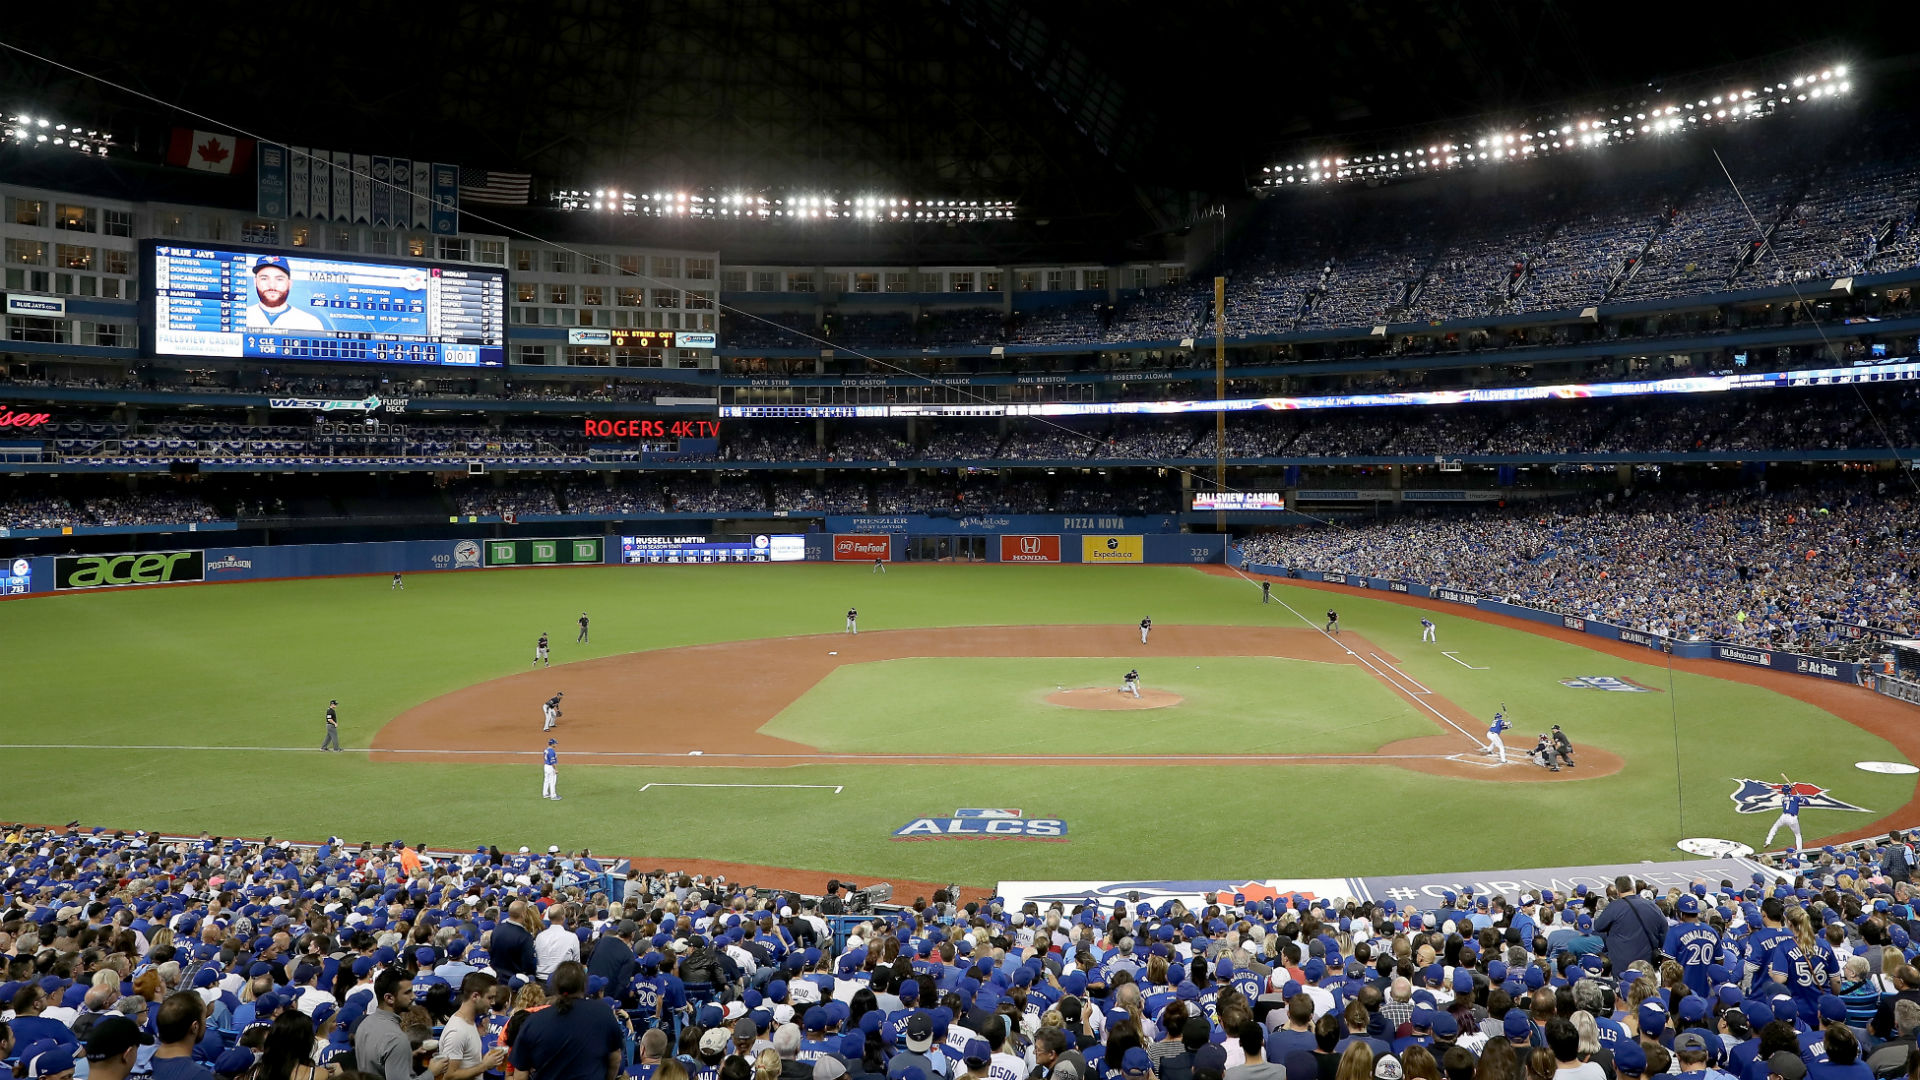 Rogers considering selling Toronto Blue Jays, report says